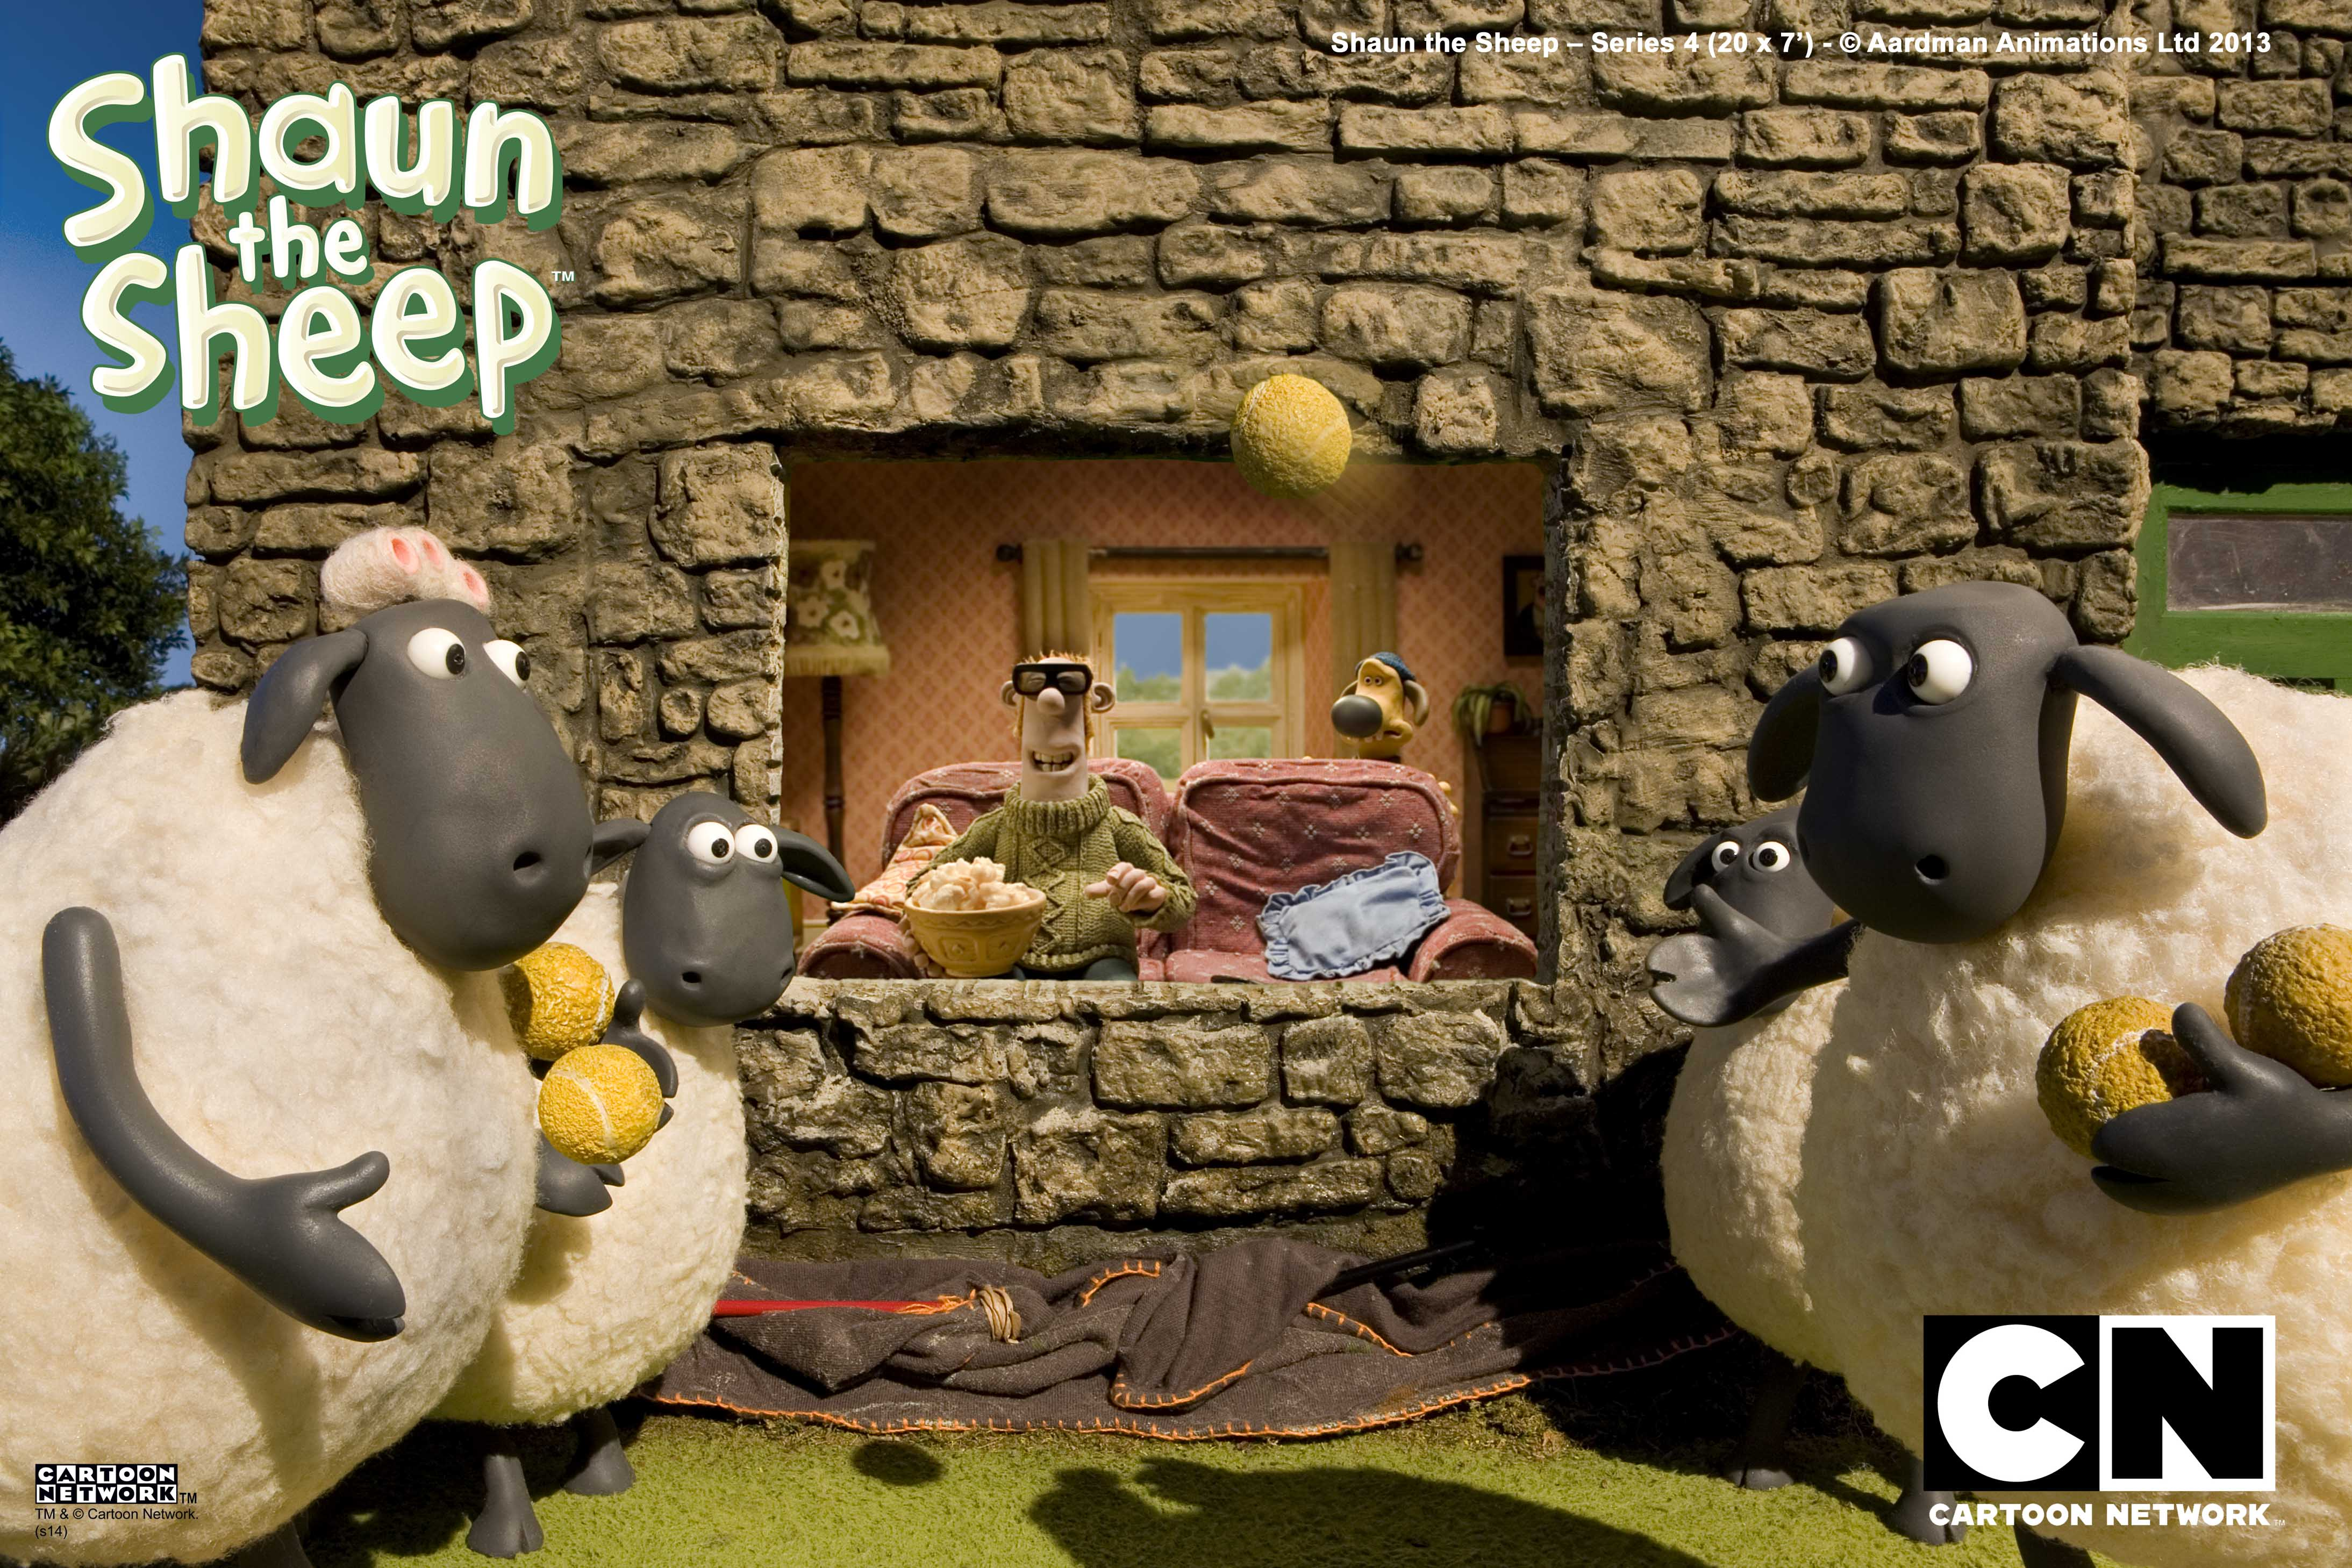 Kidscreen » Archive » Shaun the Sheep goes to southeast Asia